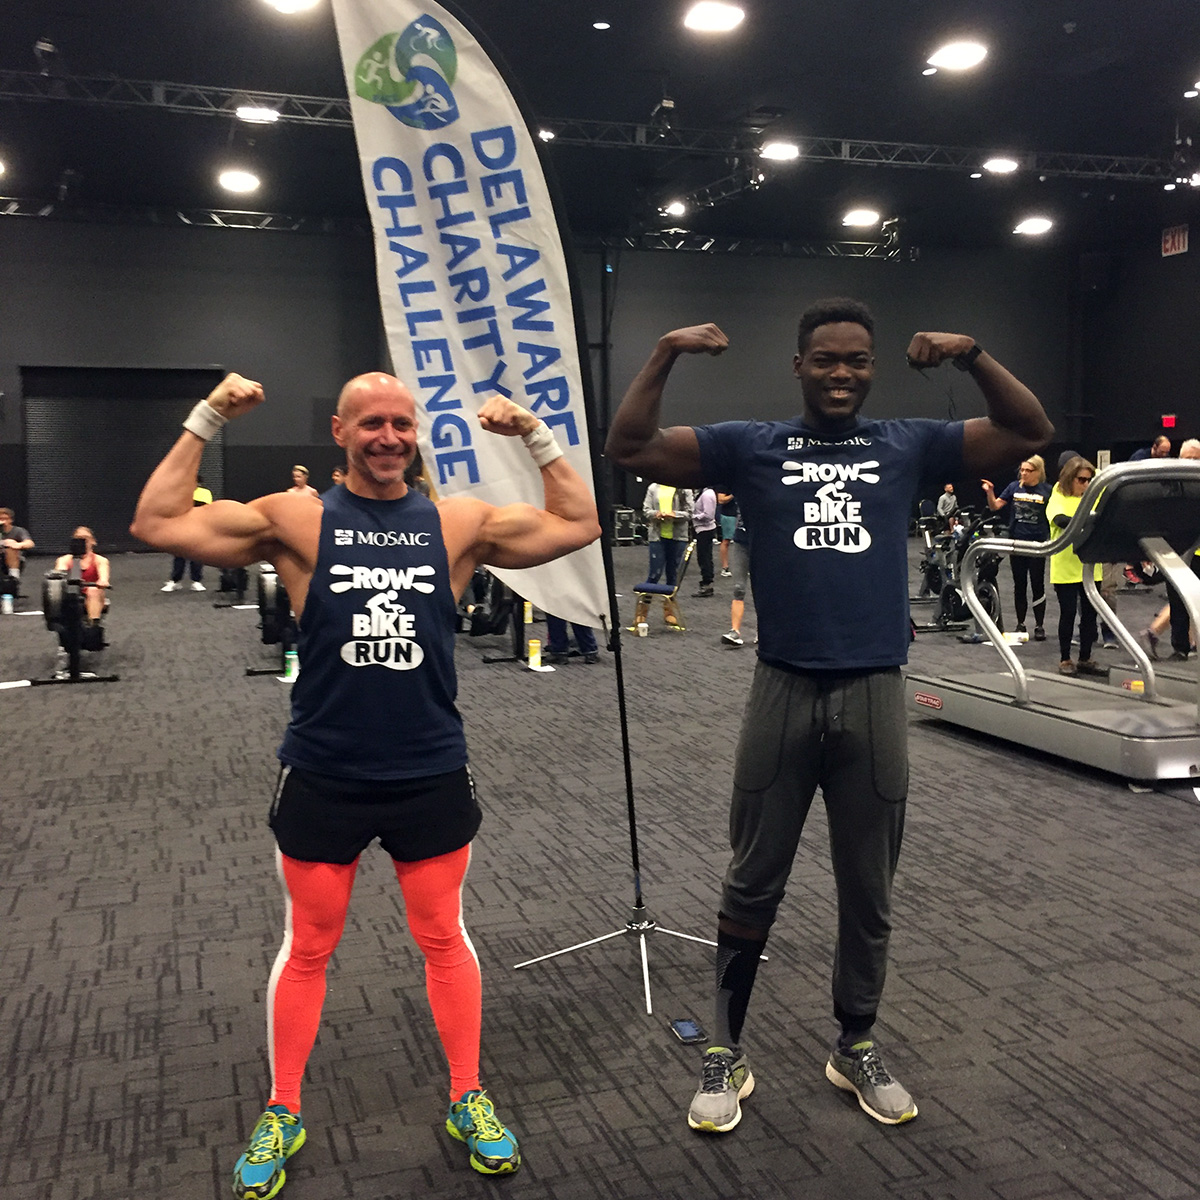 Team Mosaic in Delaware finished 3rd in the Race to Raise fundraising contest and members of the team won the Run, Row, Bike Co-Ed M, M, F division in the indoor triathlon.